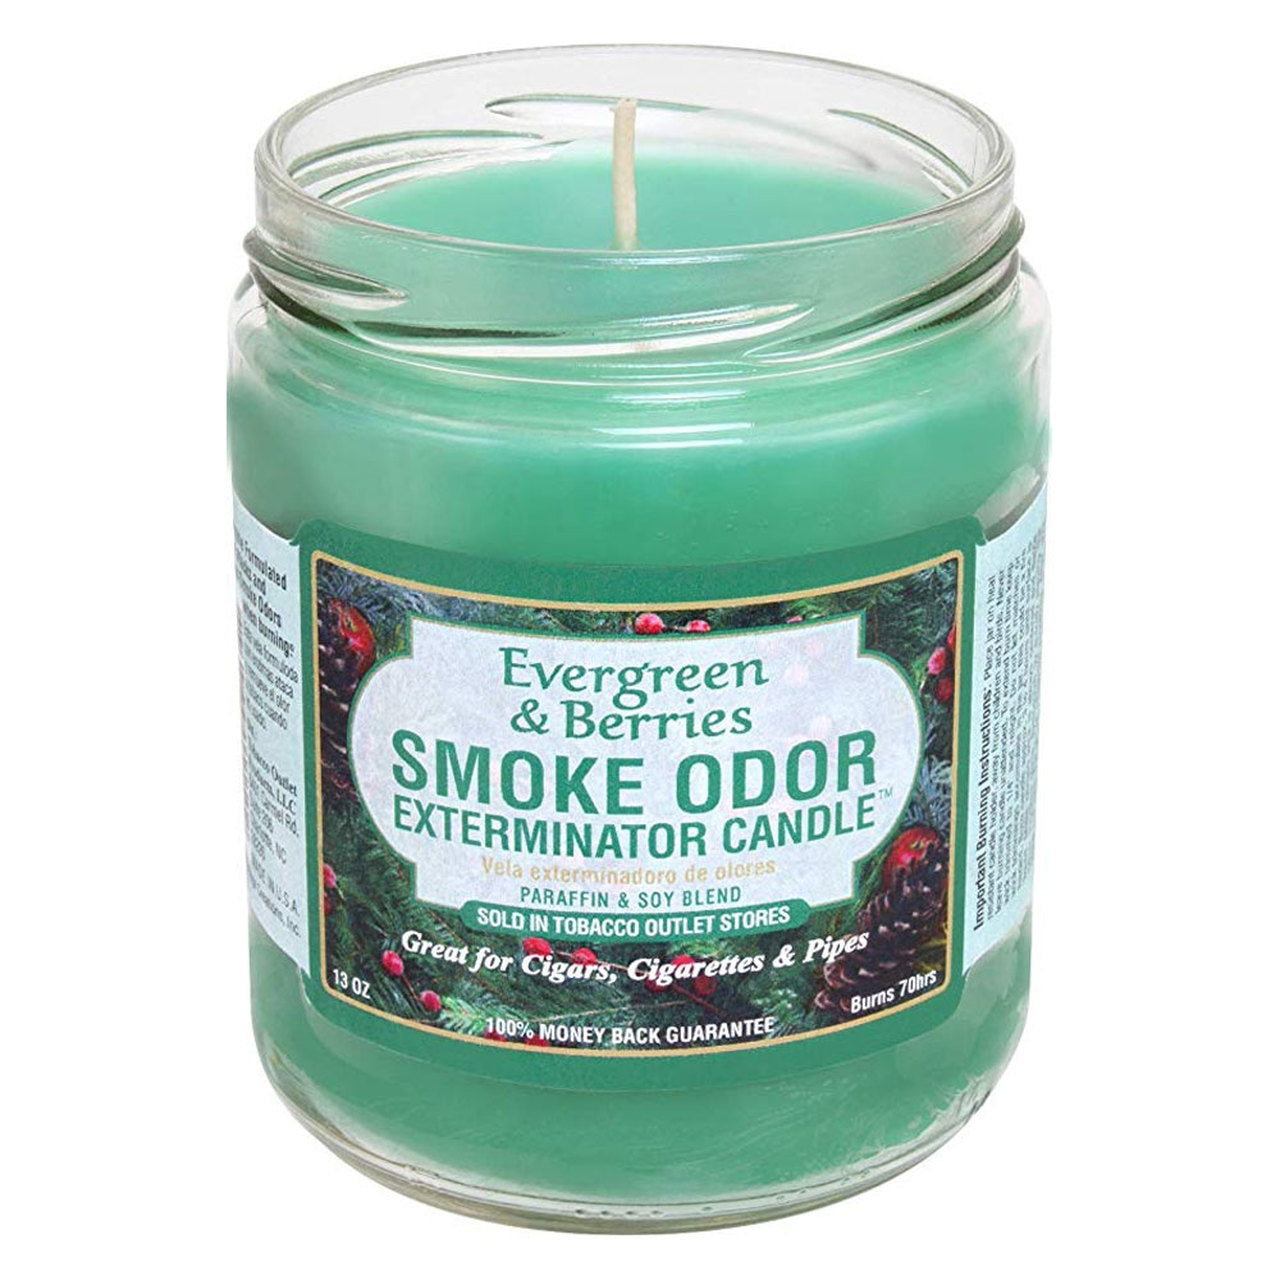 Smoke Odor 13oz. Candle - Evergreen & Berries